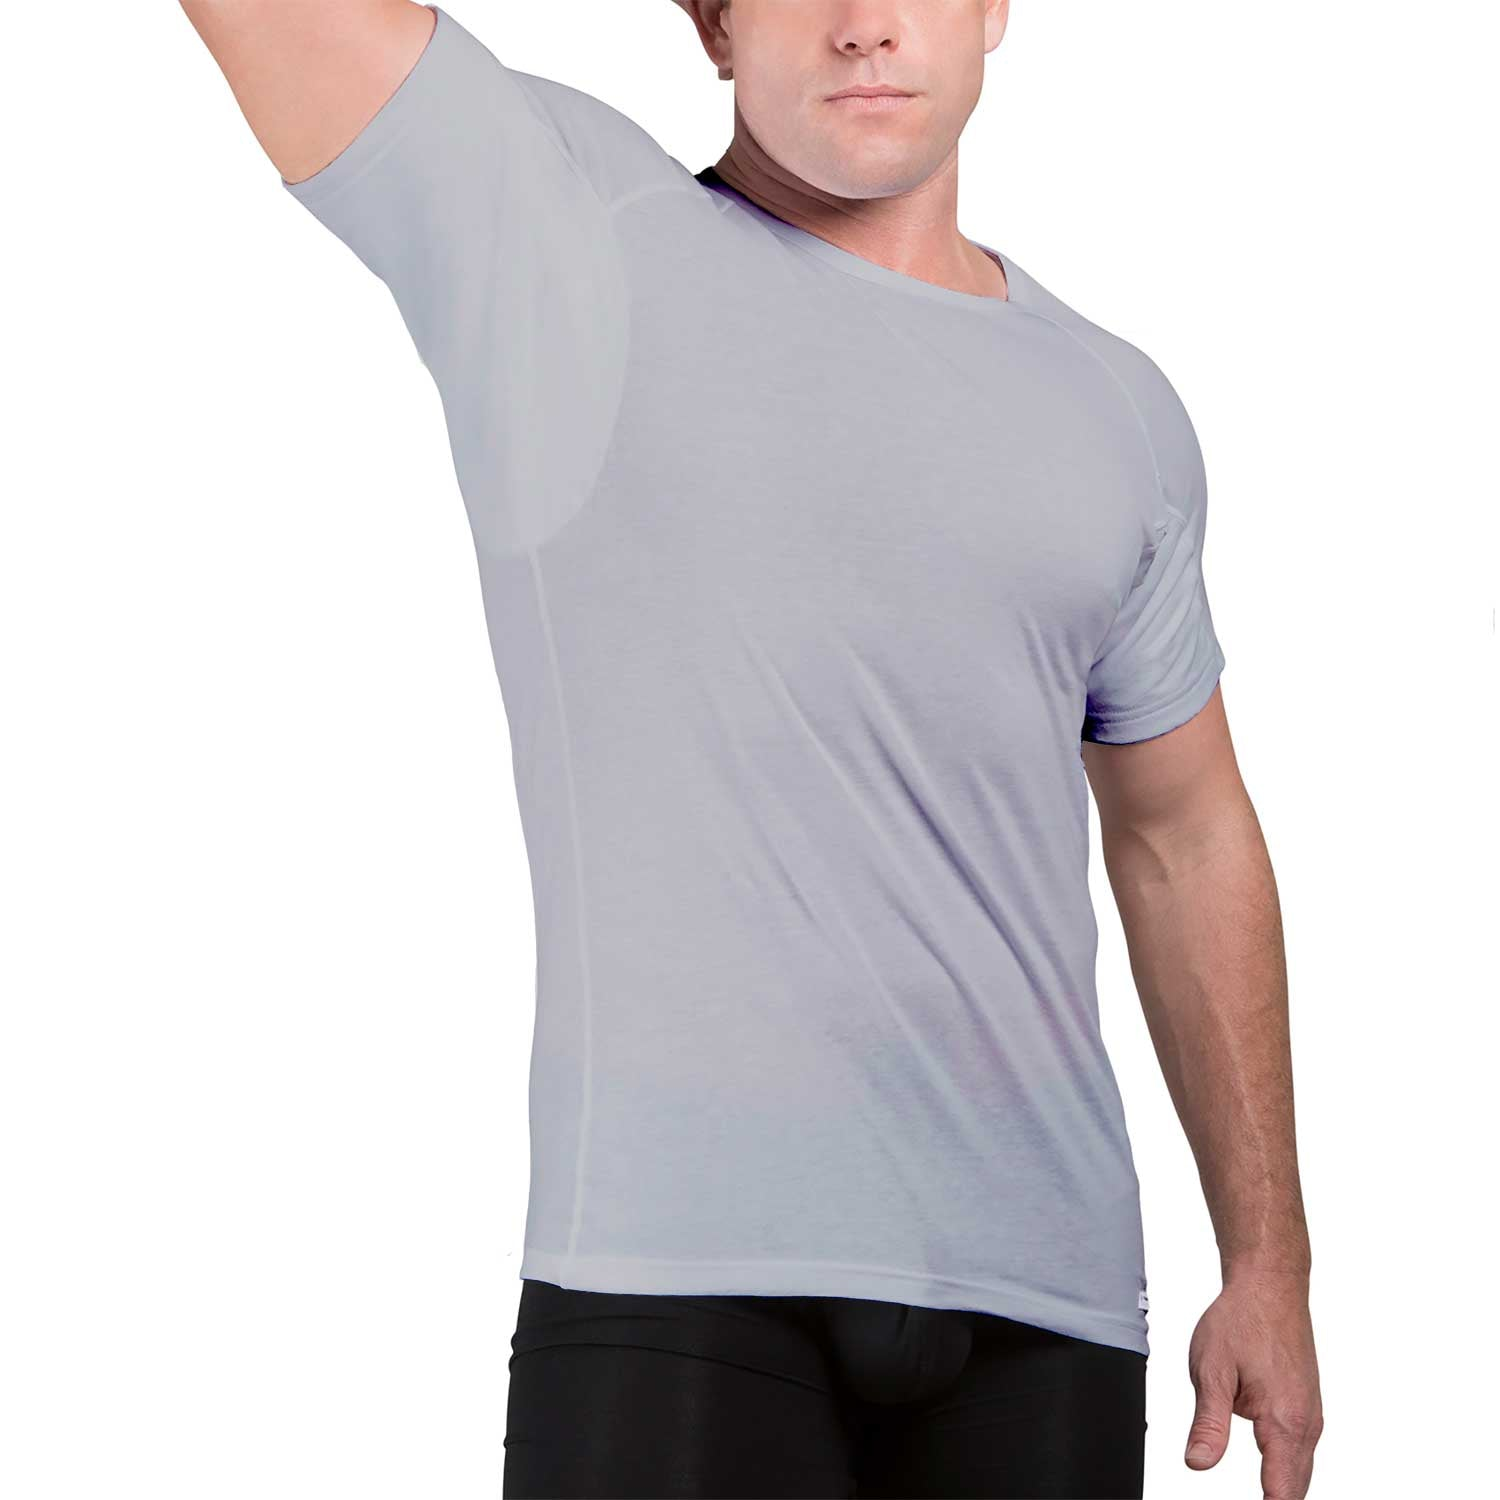 Ejis Sweat Proof Undershirts with Sweat Pads and Silver Micro Modal Crew Neck